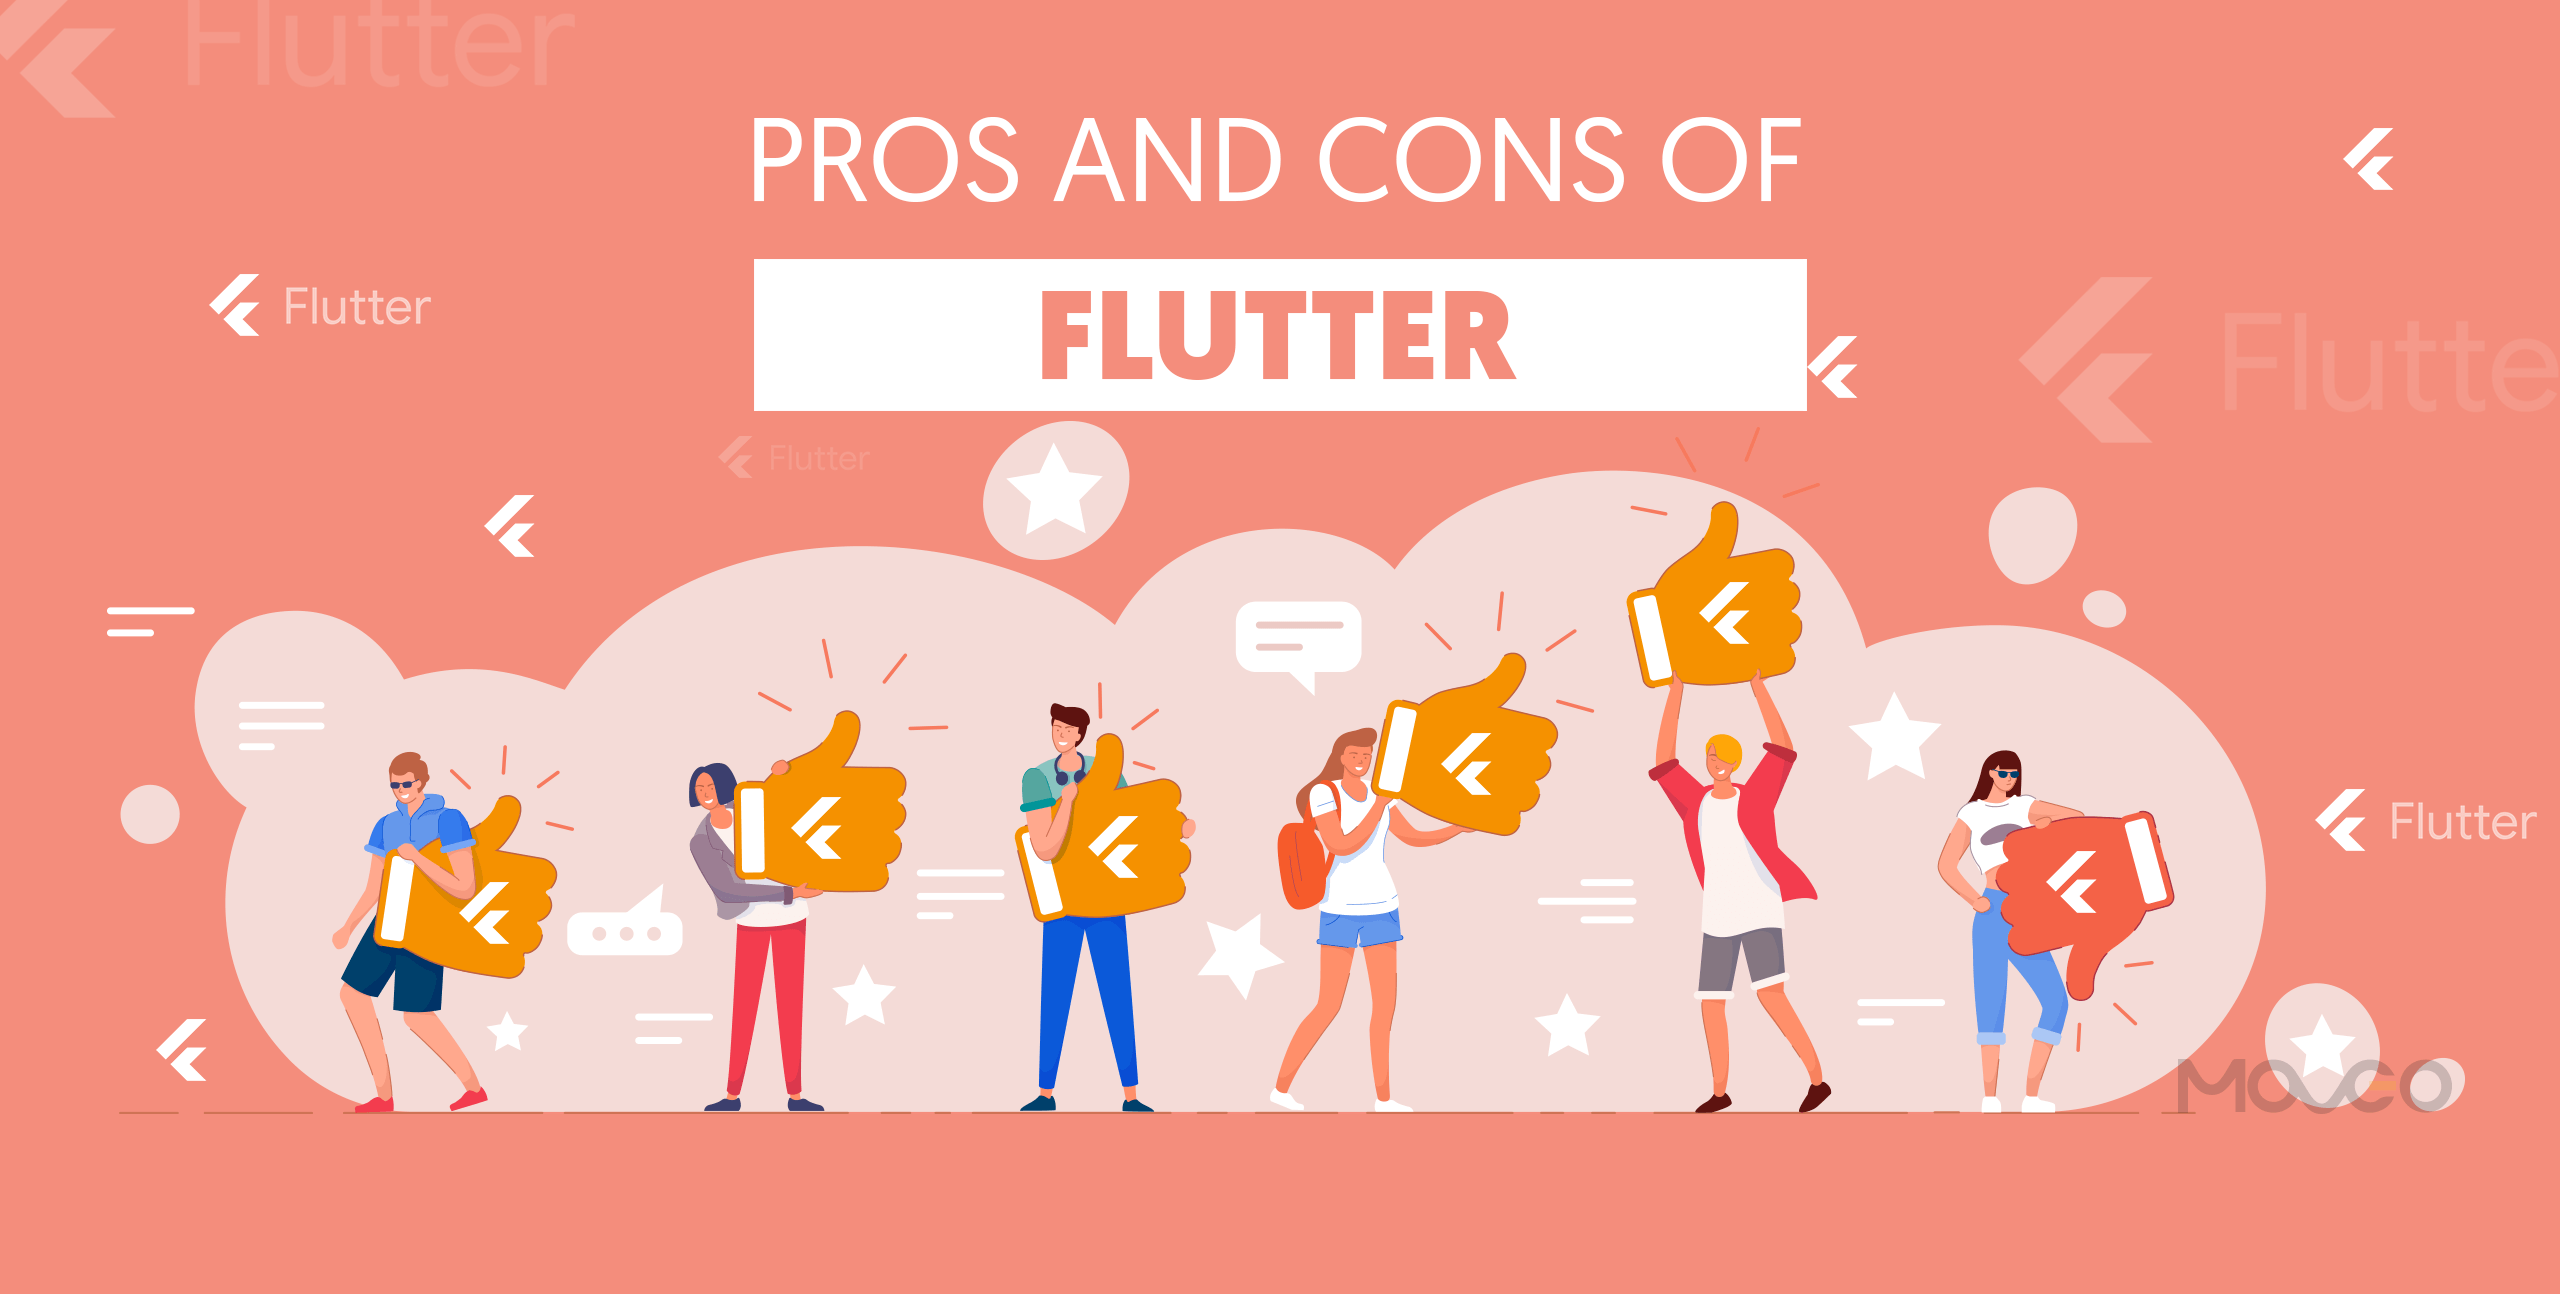 pros and cons of flutter